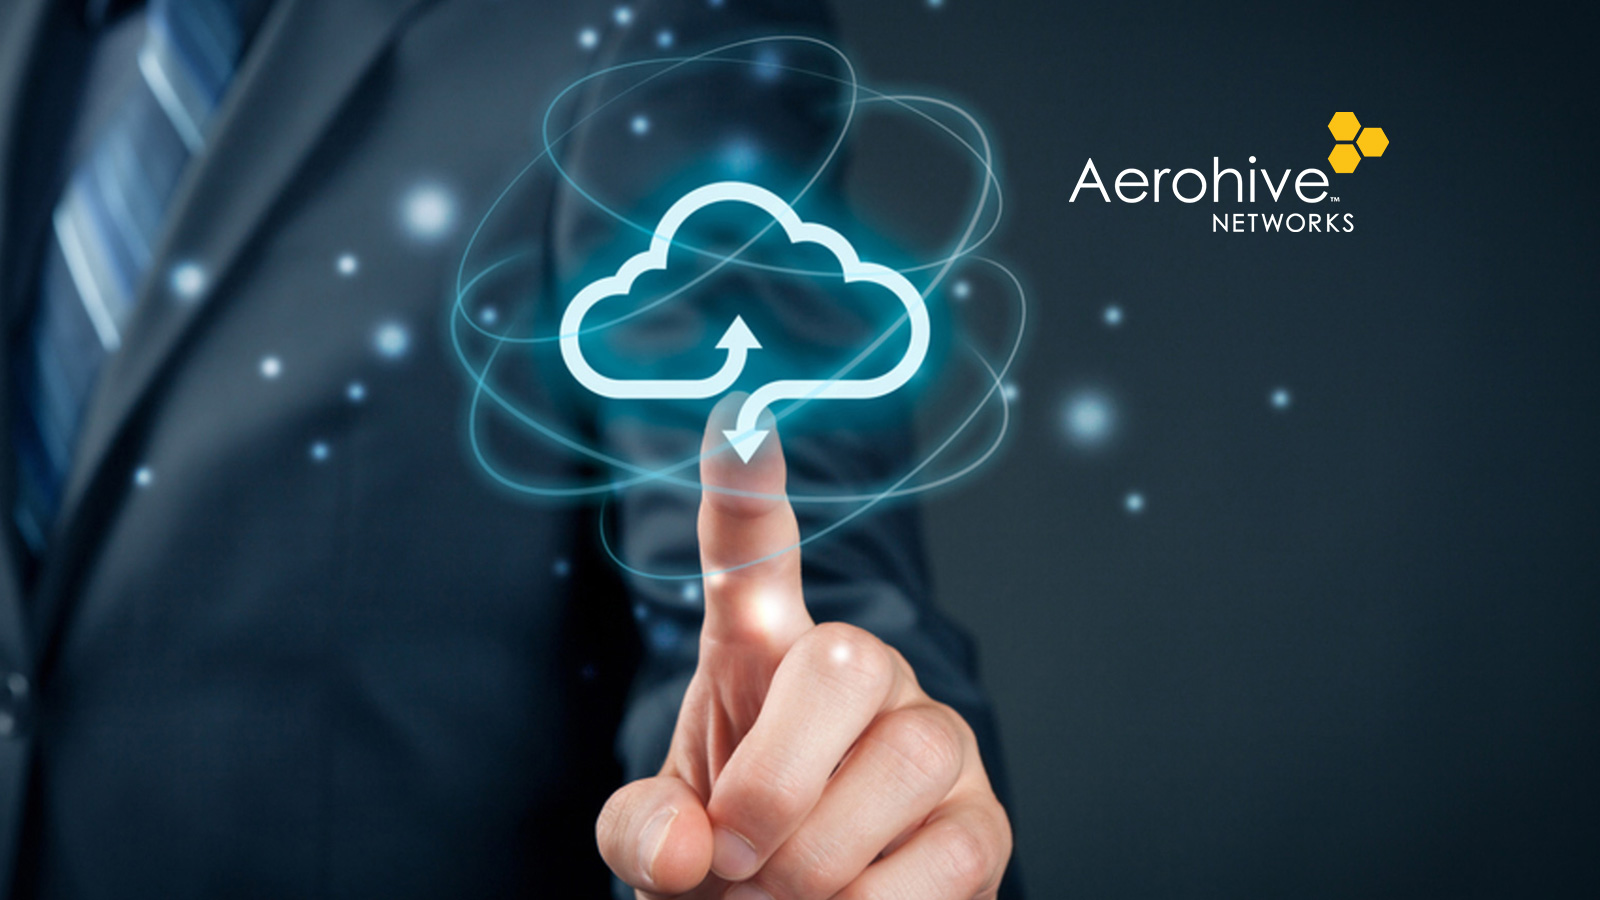 Aerohive to Exhibit Innovative Cloud-Managed Networking